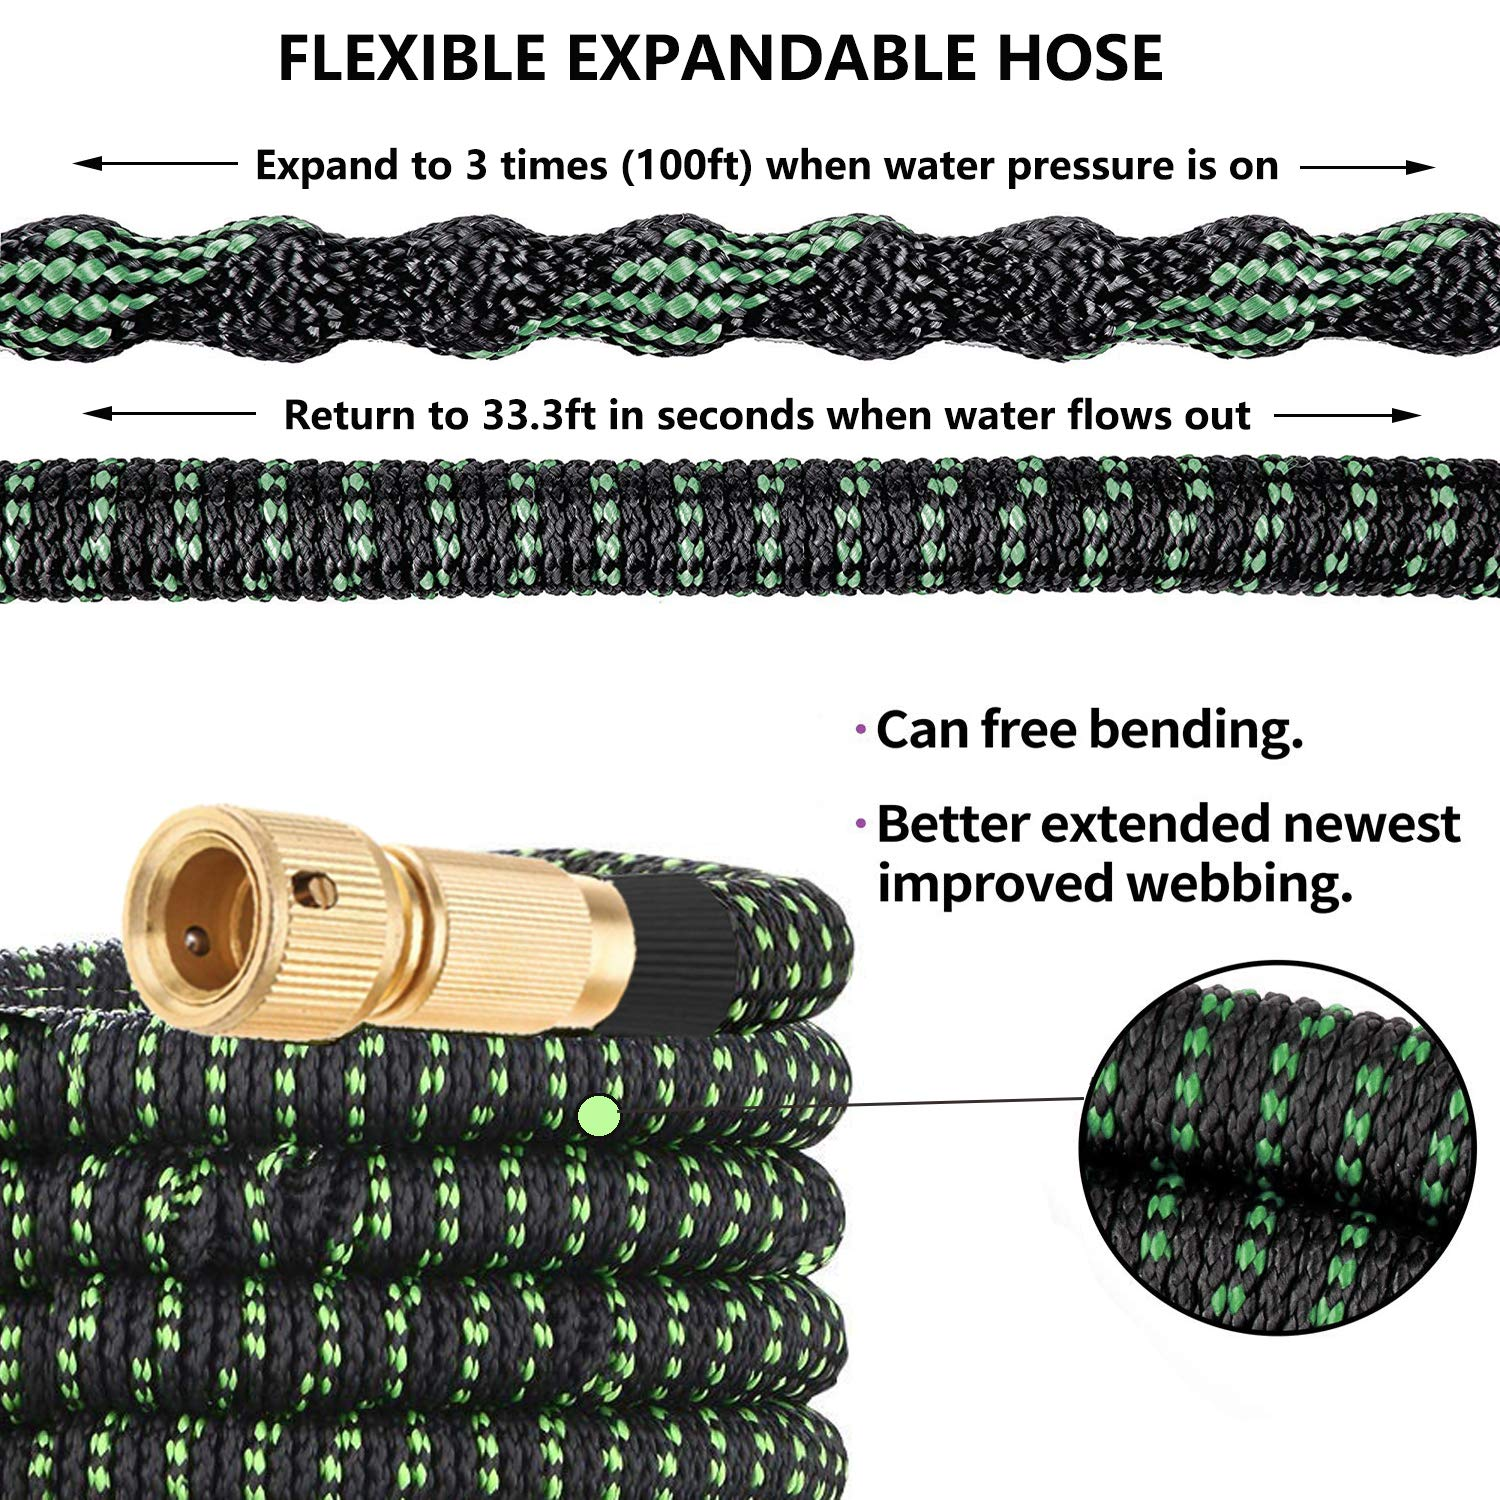 BKhome Expandable Garden Hose Pipe - 100ft Extra Strong Lightweight Yard Water Hose 9 Functions Spray Nozzle, and Hanger